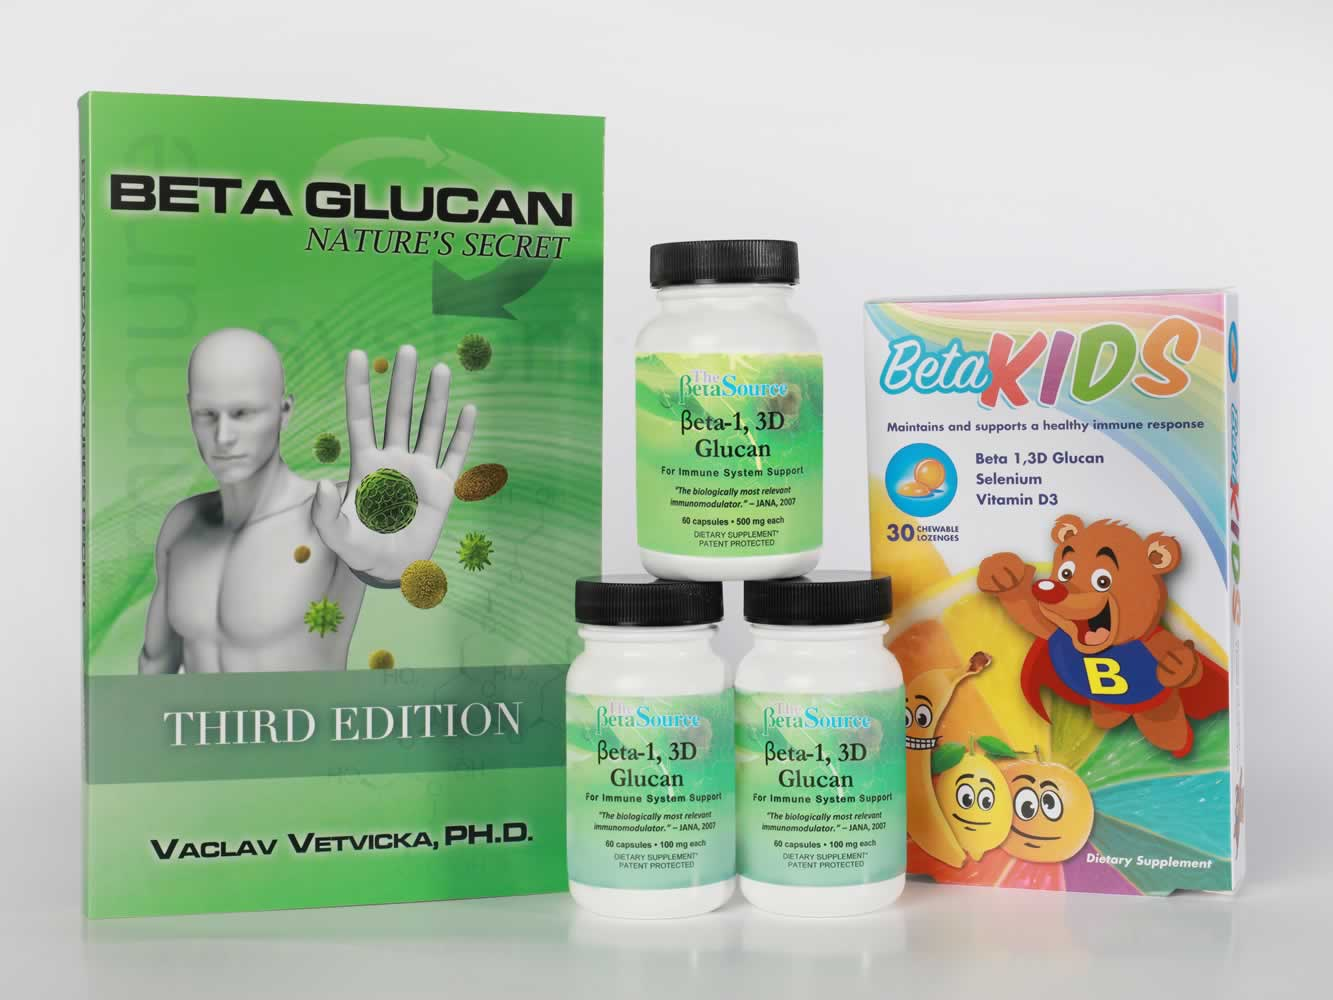 "Click here to Order 2 bottles of 100 mg, 1 bottle of 500 mg of Beta Glucan and 1 box of BetaKids .  We will send you a copy of Dr. Vetvicka's book, Beta ""Glucan: Natures Secret 3rd Edition"" FREE!"